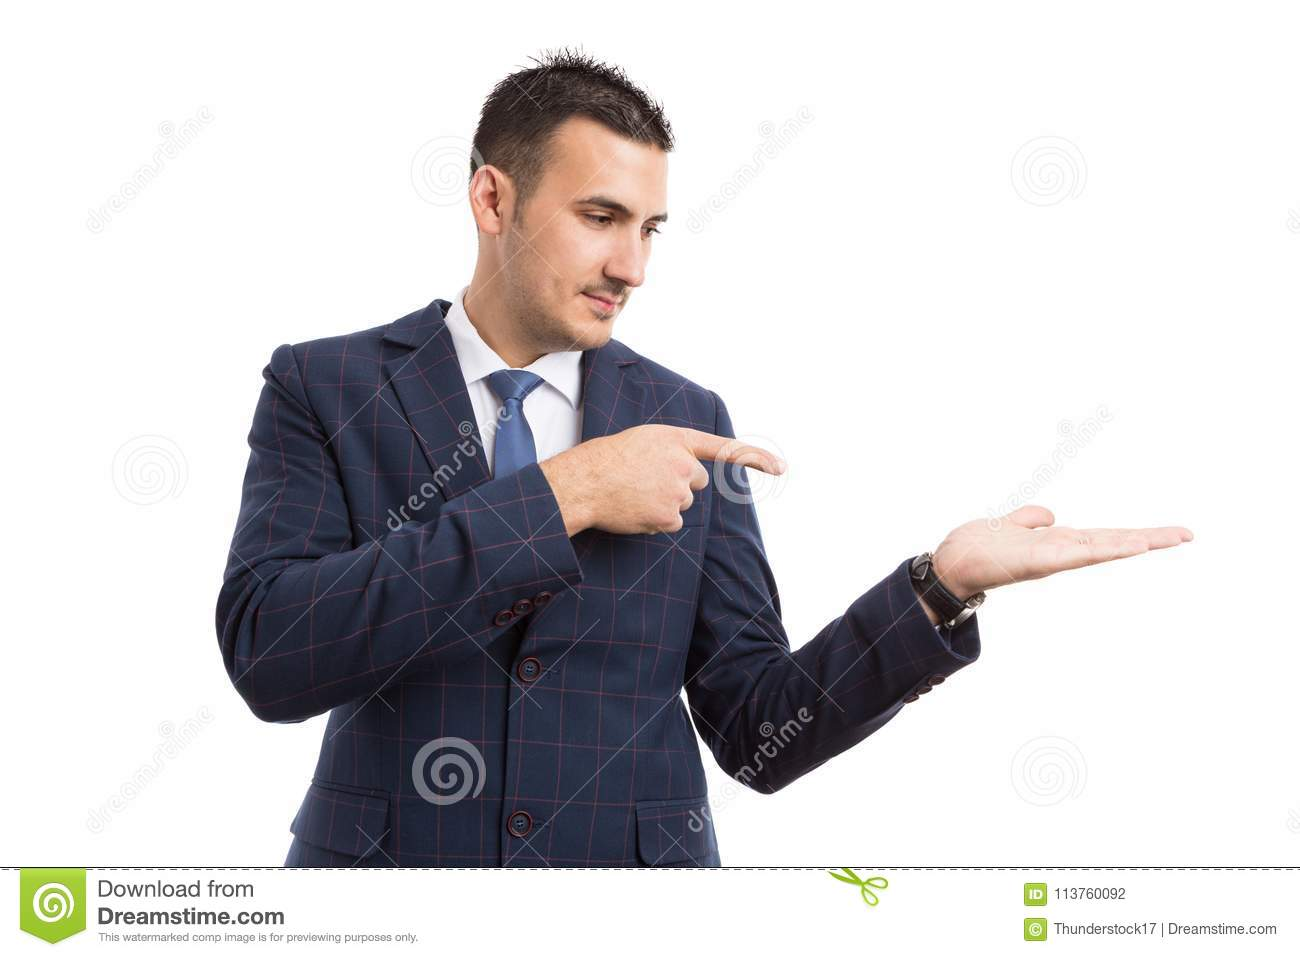 Young handsome salesman or businessman pointing to an option